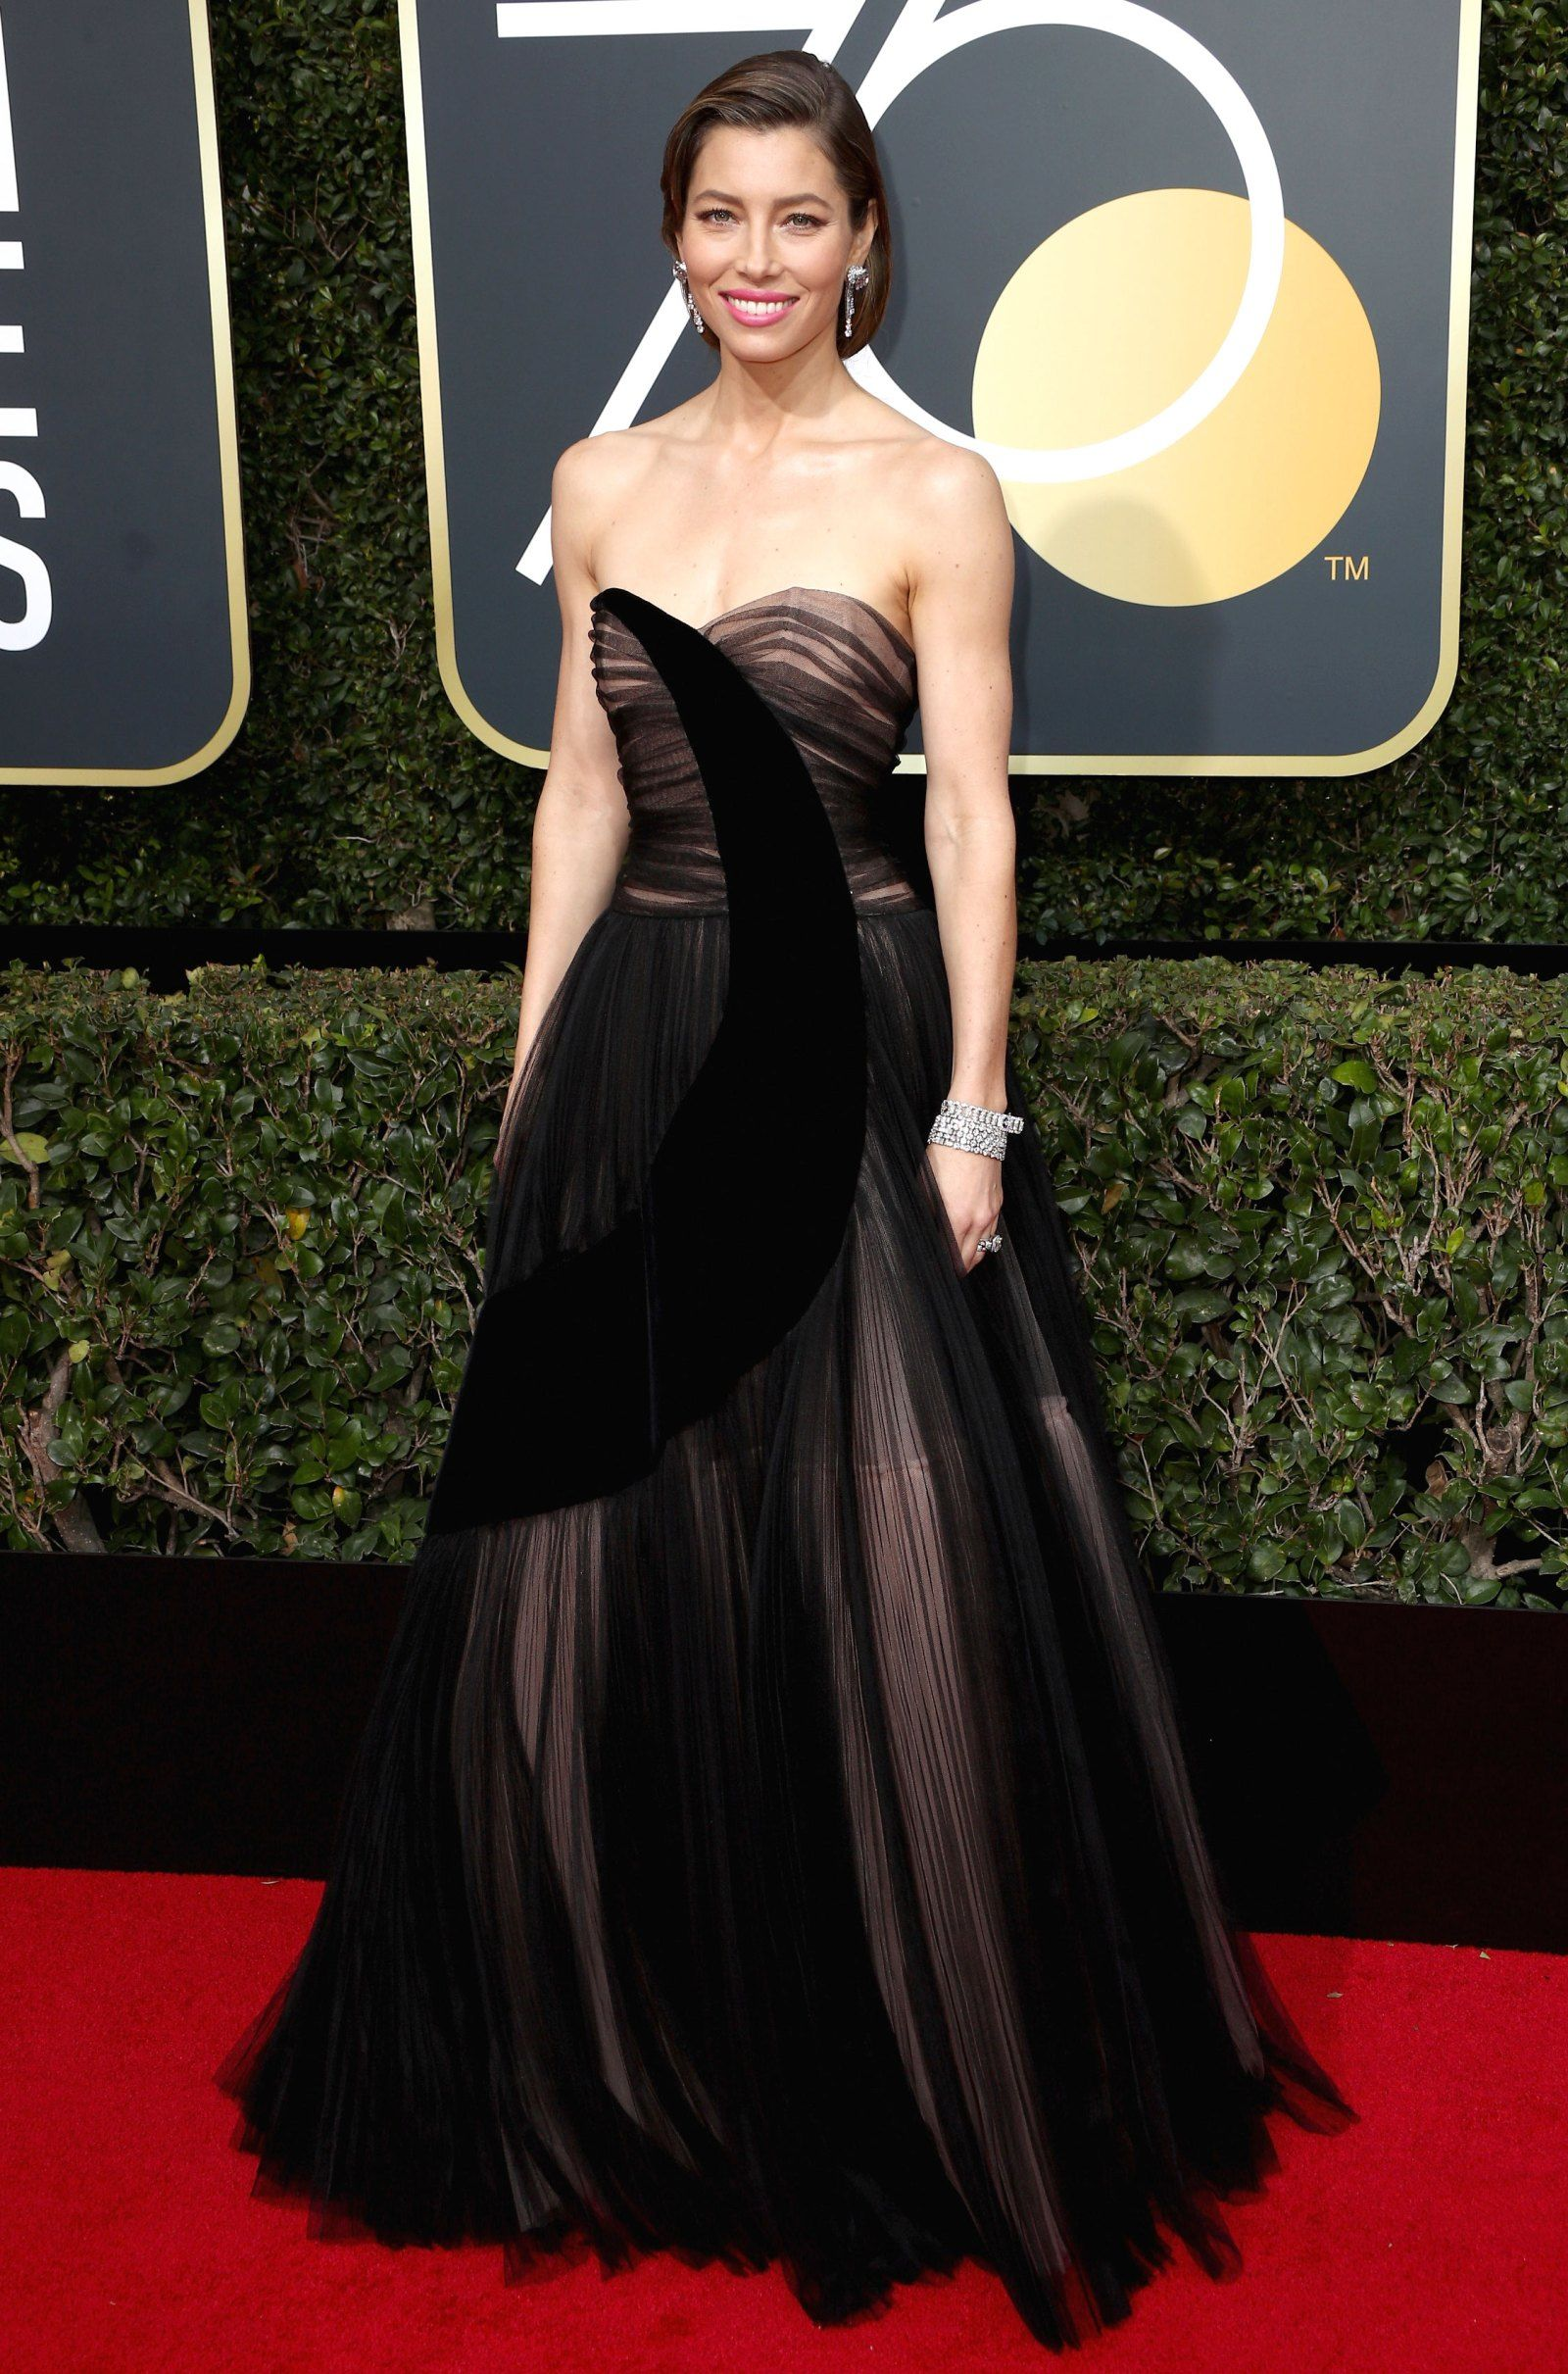 Golden globes red carpet fashion see stars dresses gowns